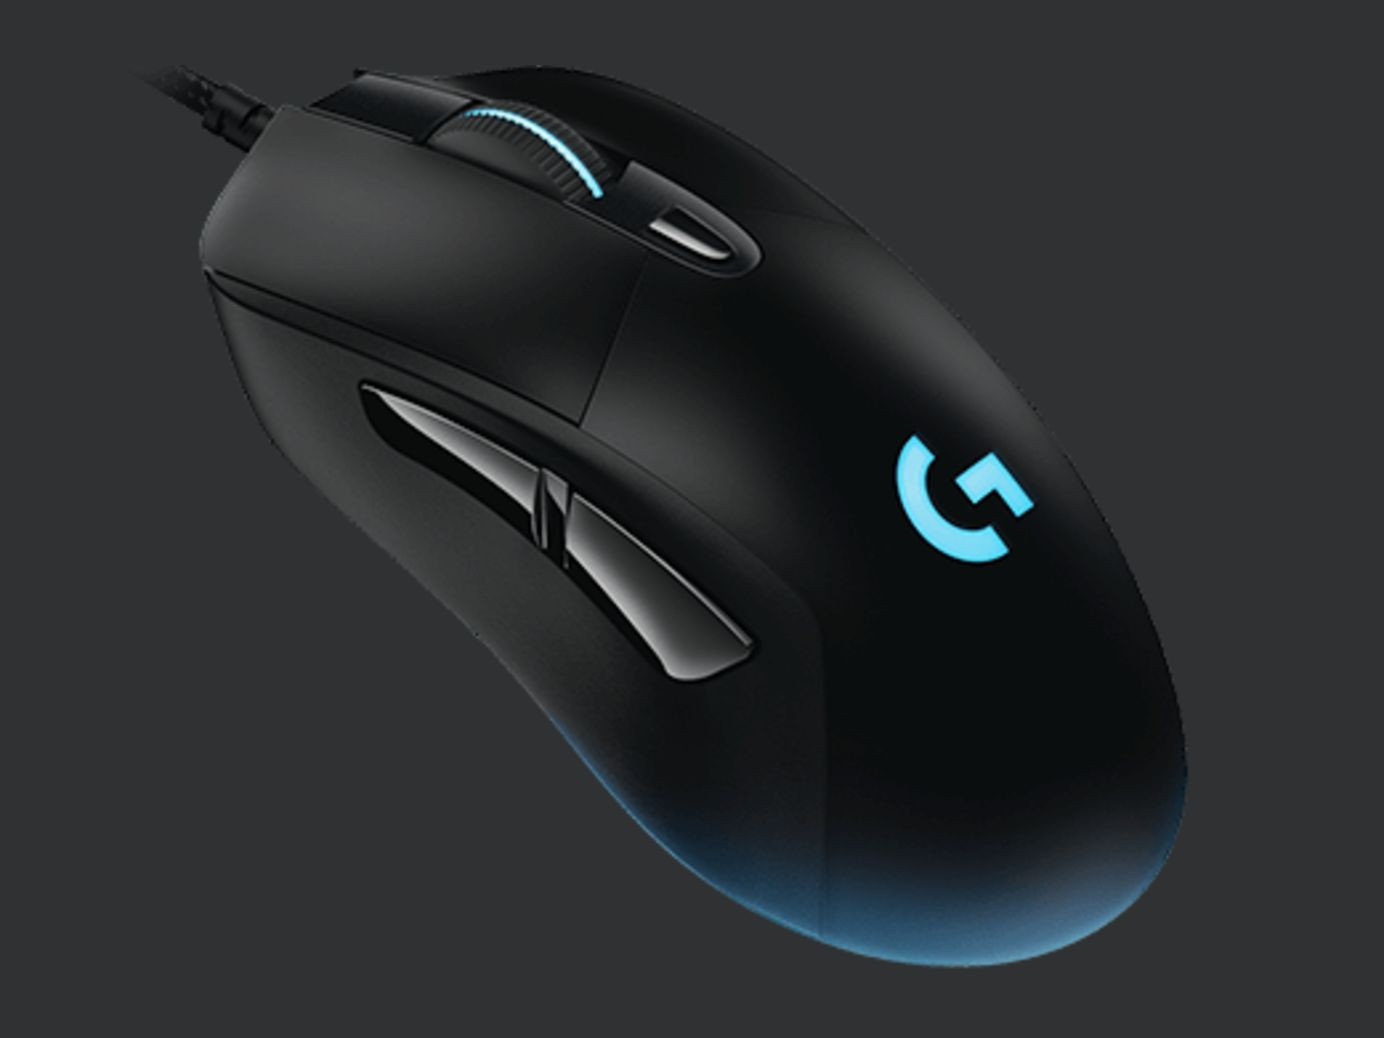 a1f4deb72f3 Buy Logitech G403 Prodigy Wired Gaming Mouse Online, Australia - Evatech